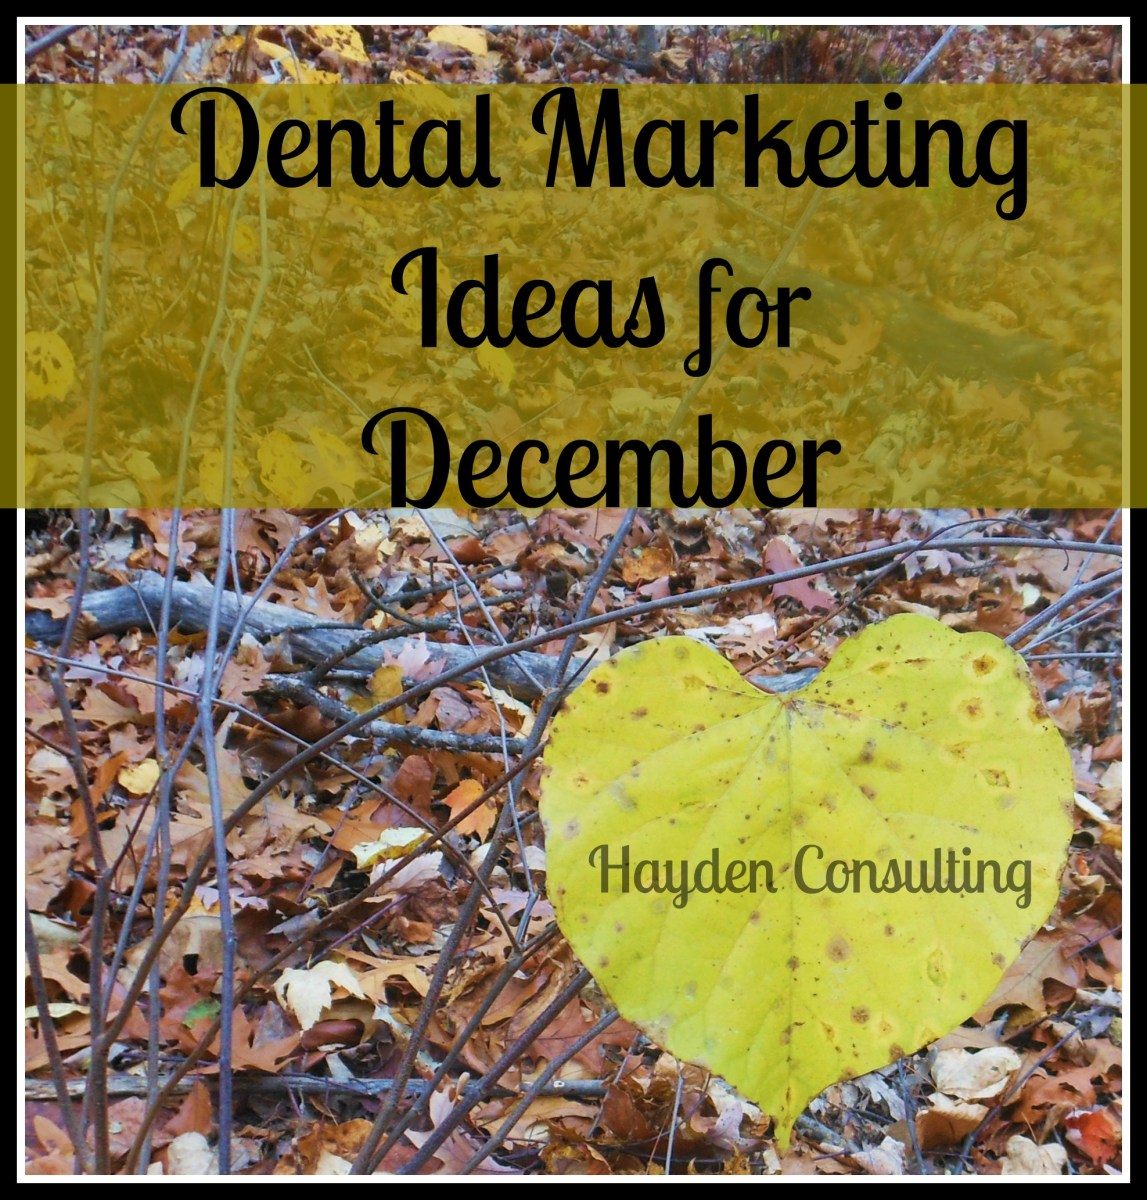 Marketing ideas for dentists from Hayden Consulting